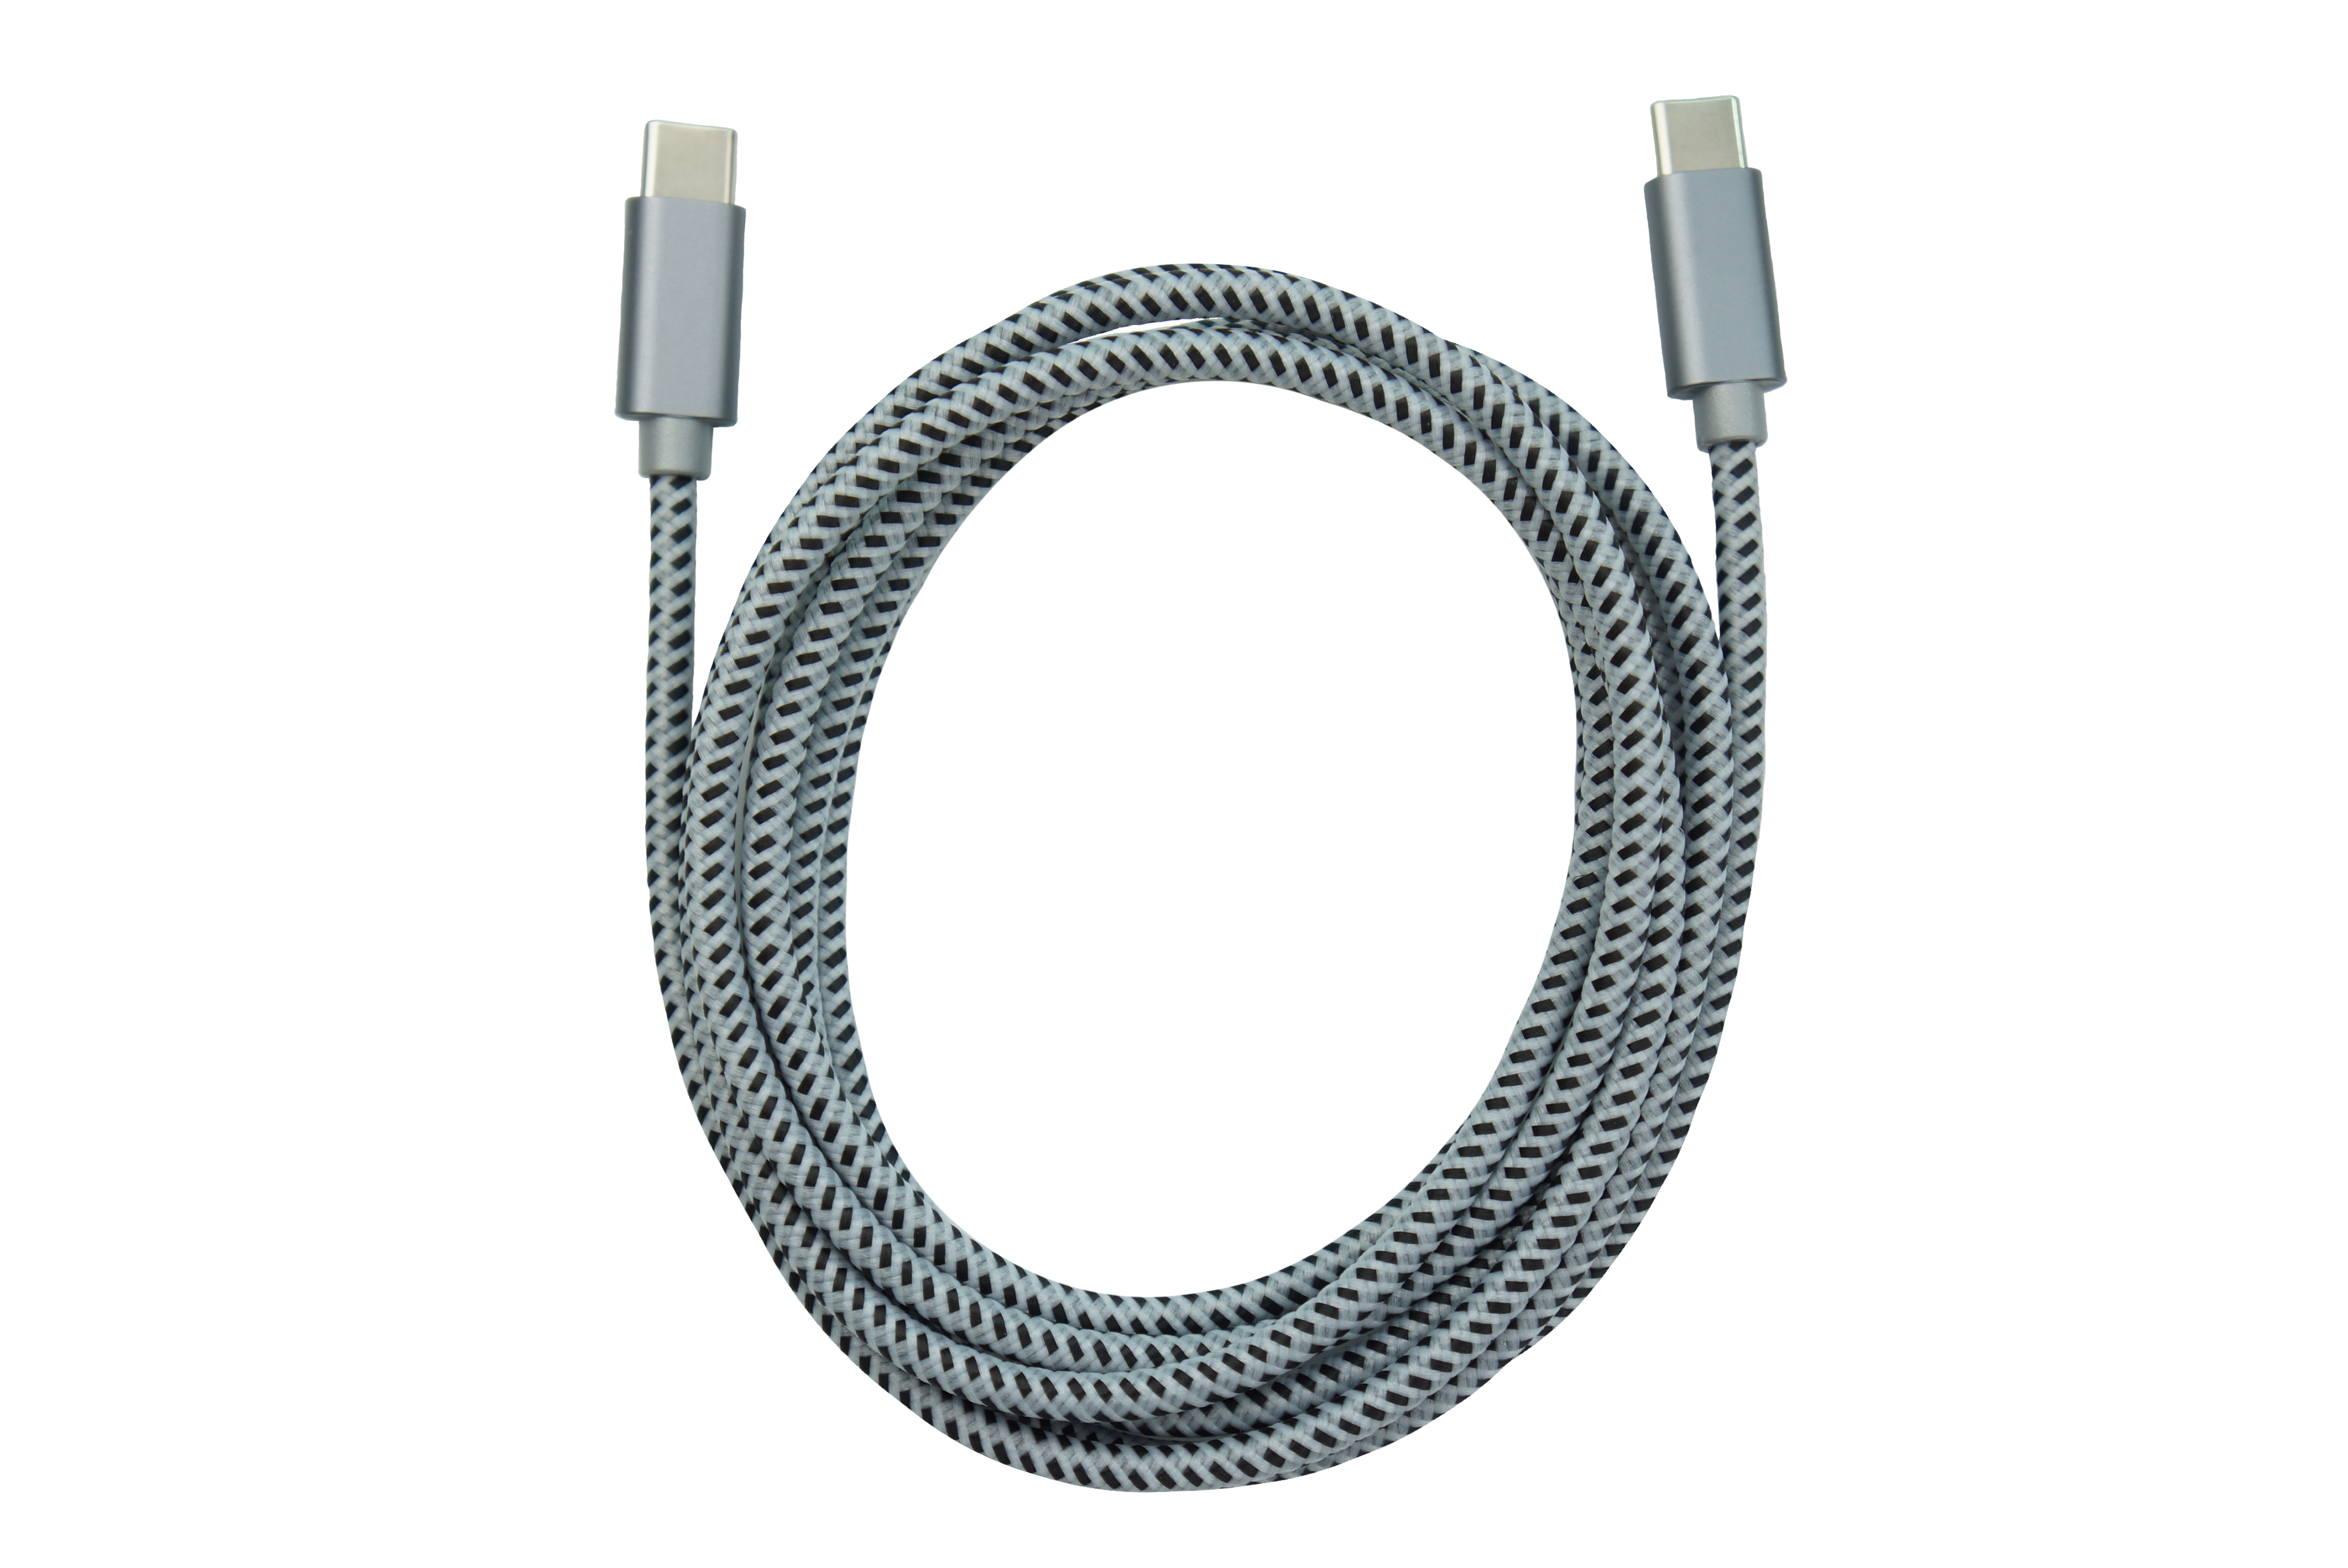 USB Type-C to Type-C Cable - 6ft